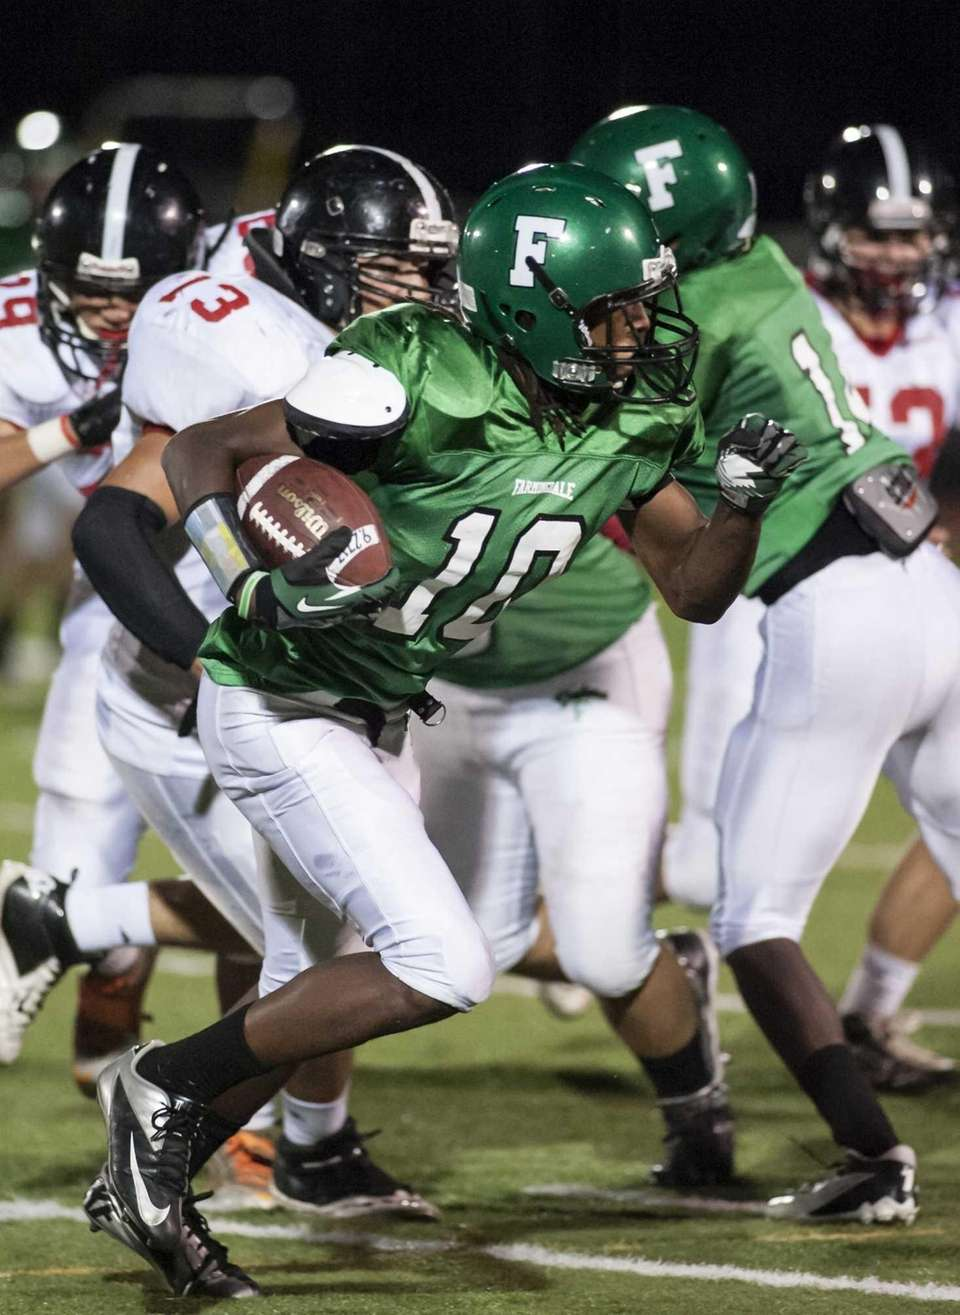 Farmingdale's Curtis Jenkins runs for yardage against Syosset